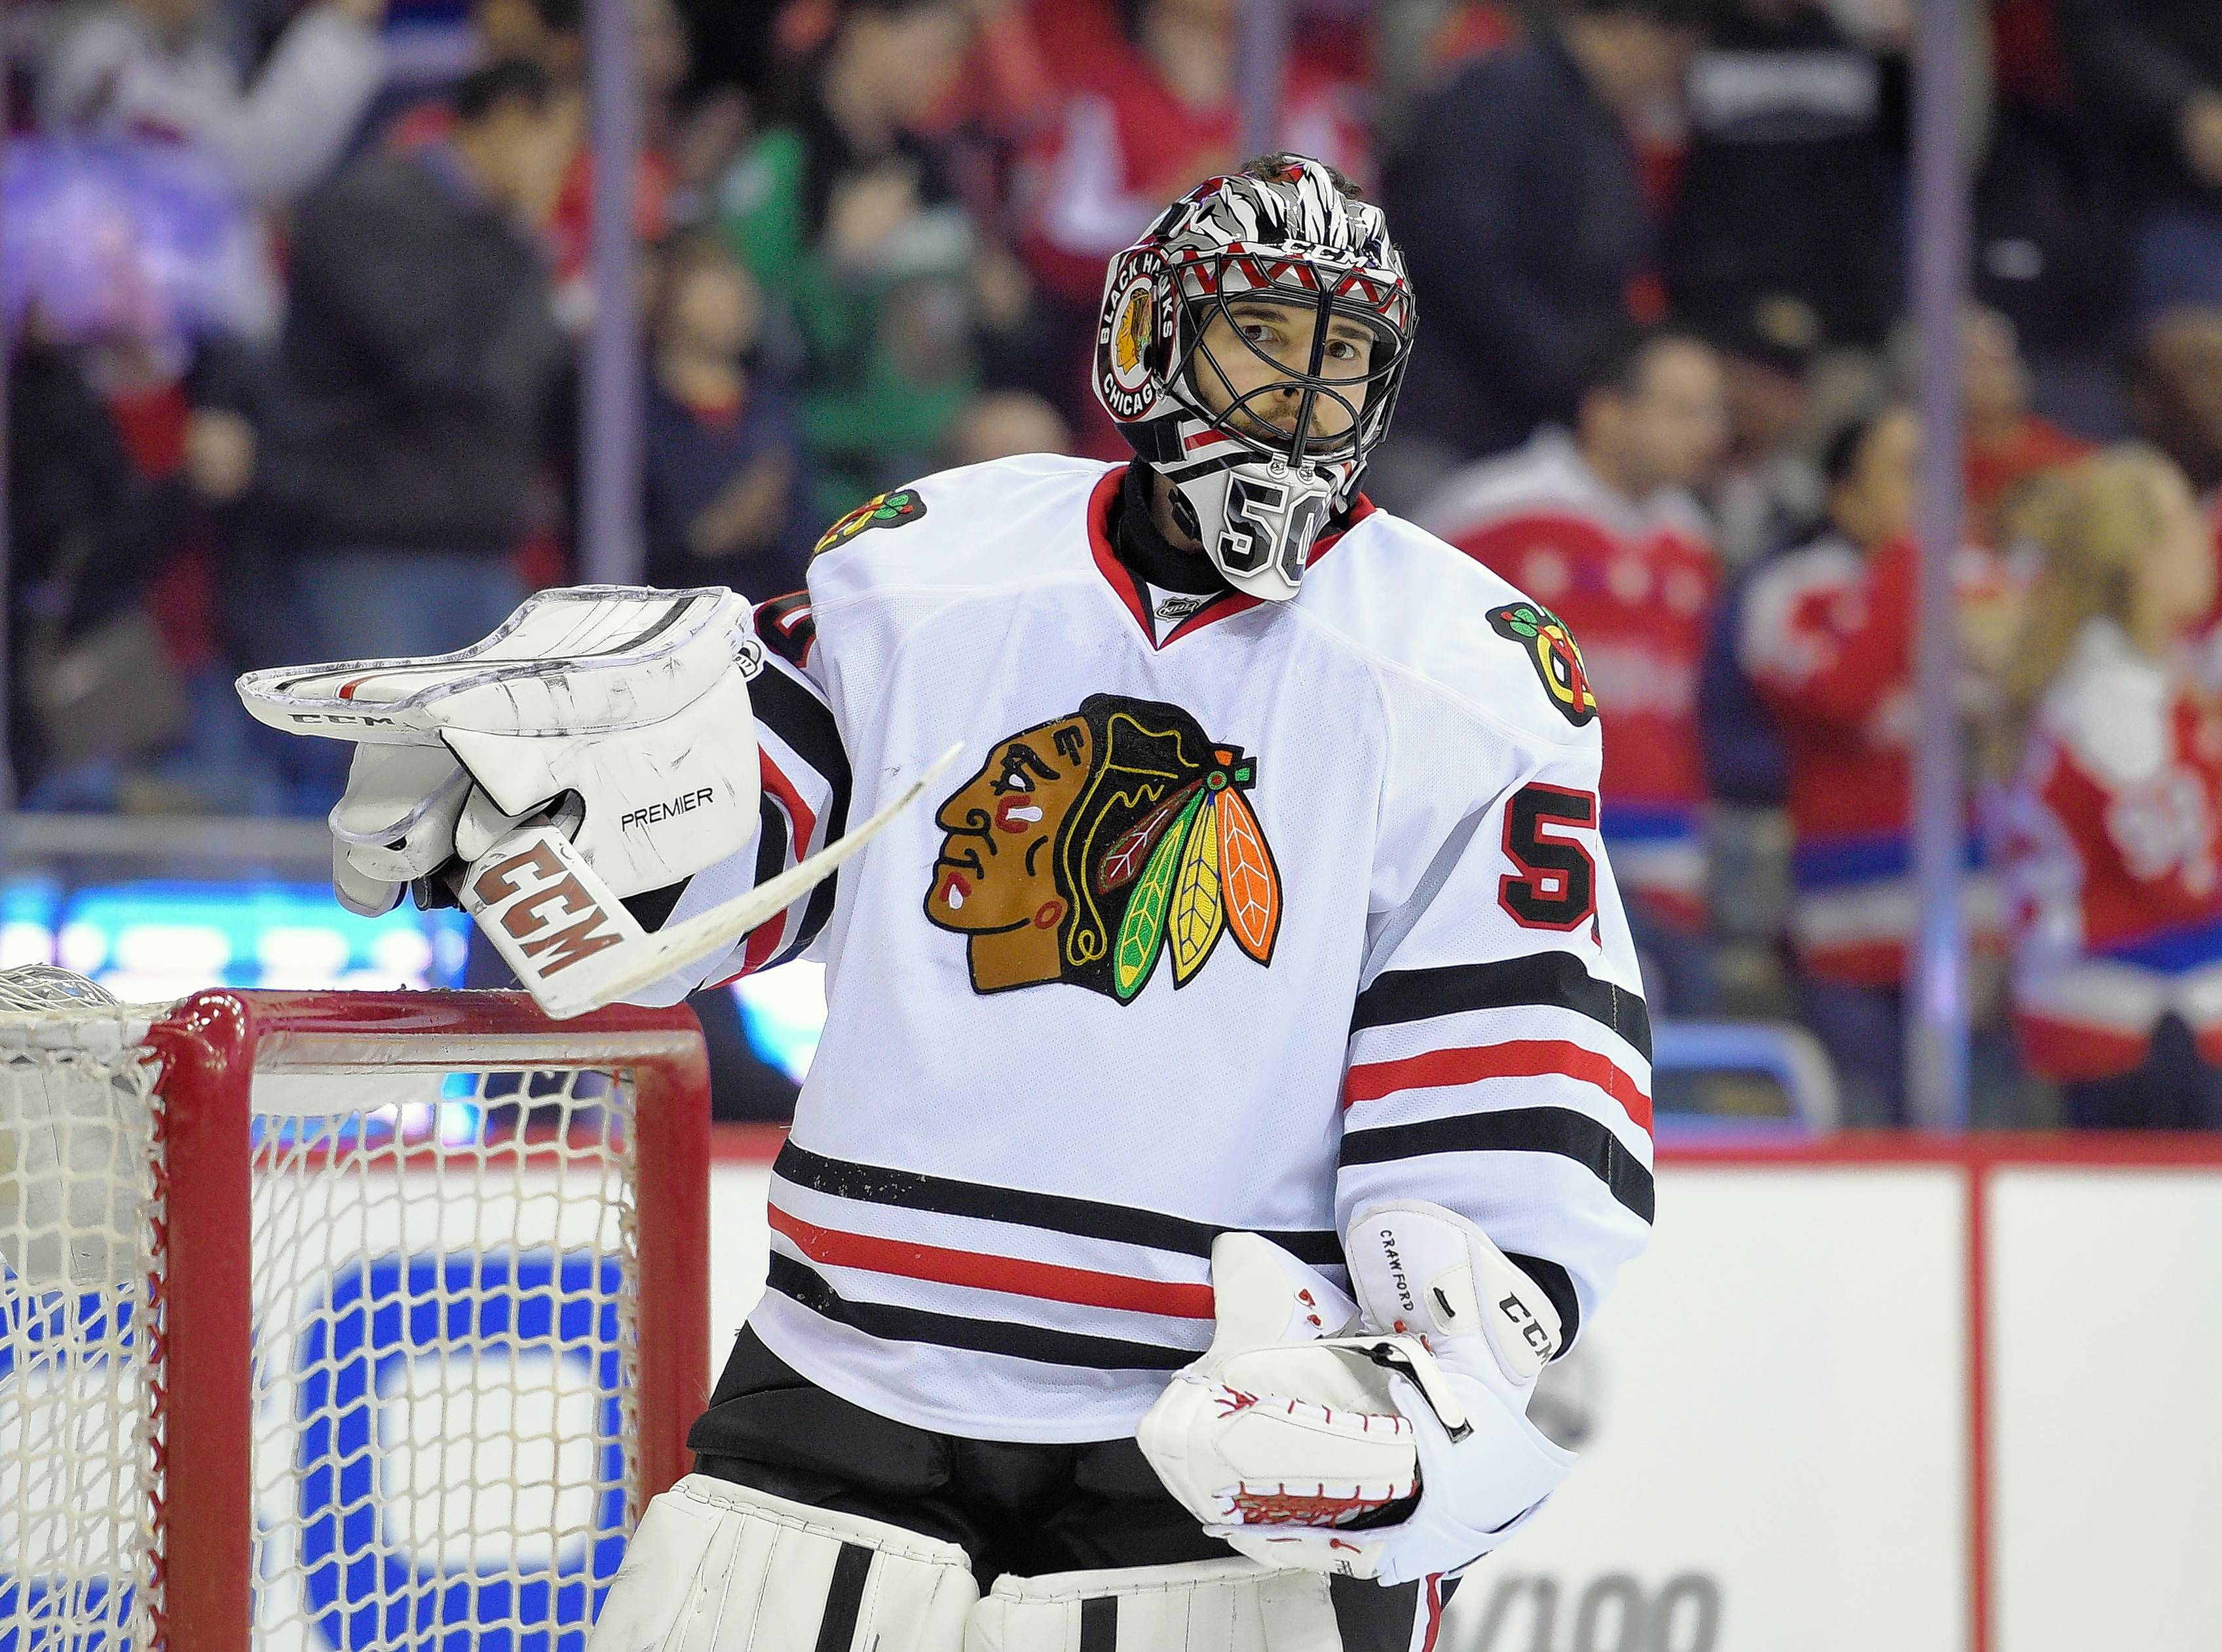 Blackhawks goalie Crawford has been on injured reserve since Dec. 27 with an upper-body injury. The Chicago Sun-Times, citing three sources, reported Tuesday that Crawford is suffering from vertigo and there is growing concern that he may not return.